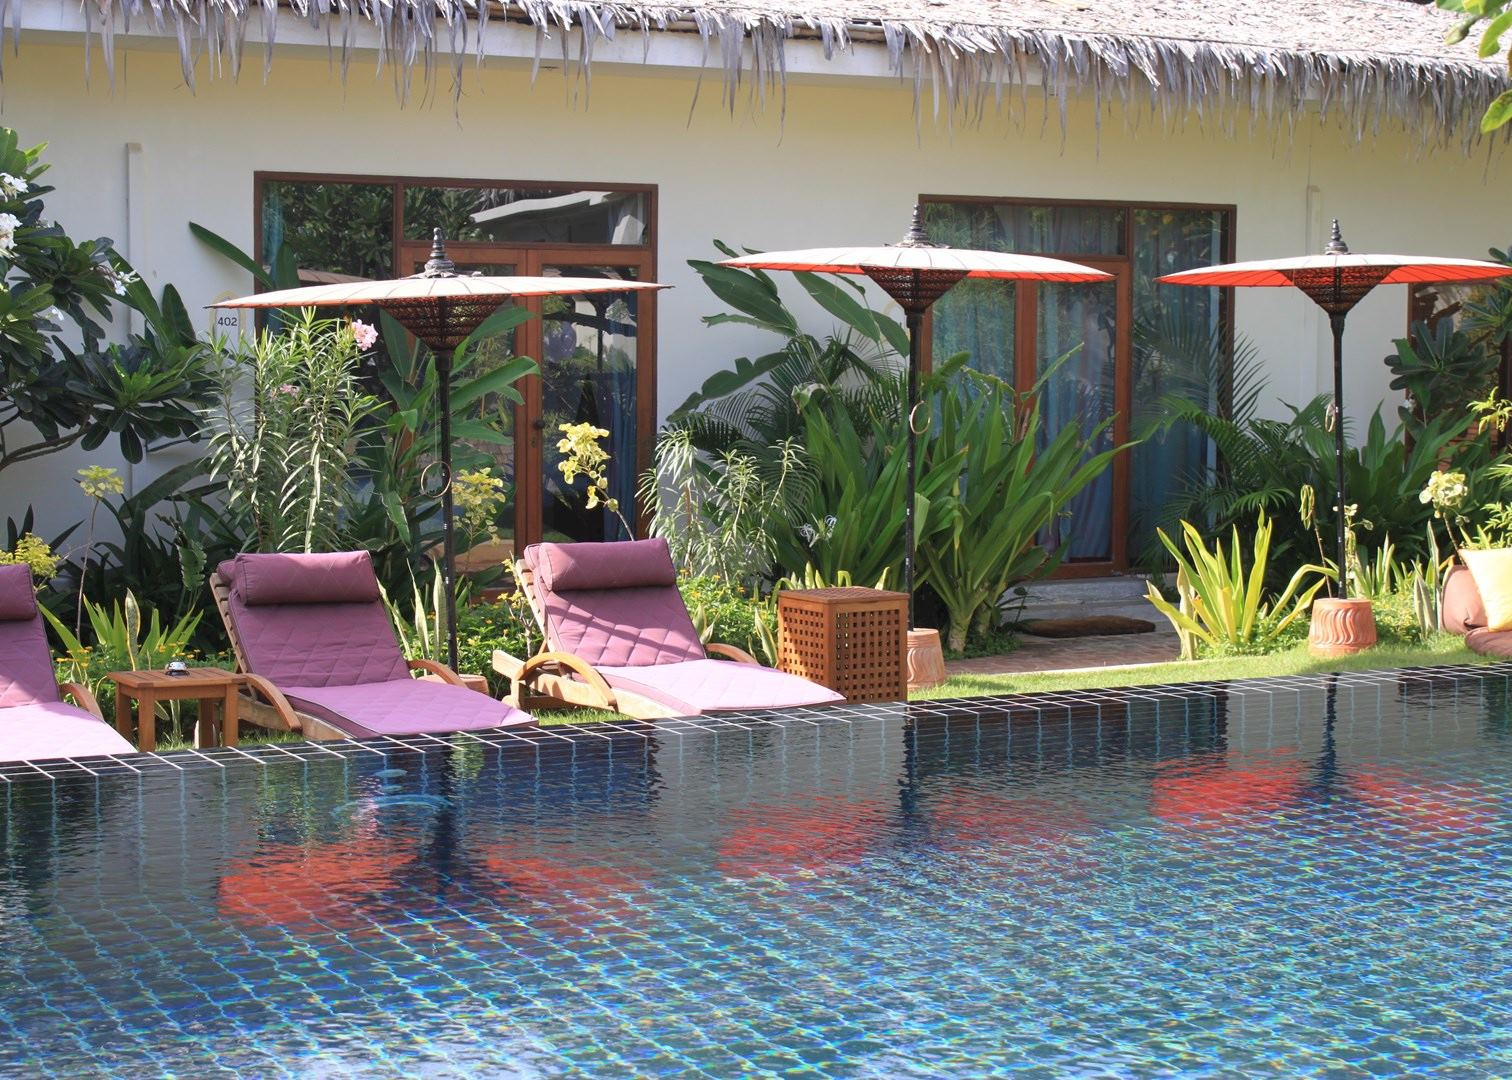 blue bird hotels in bagan audley travel